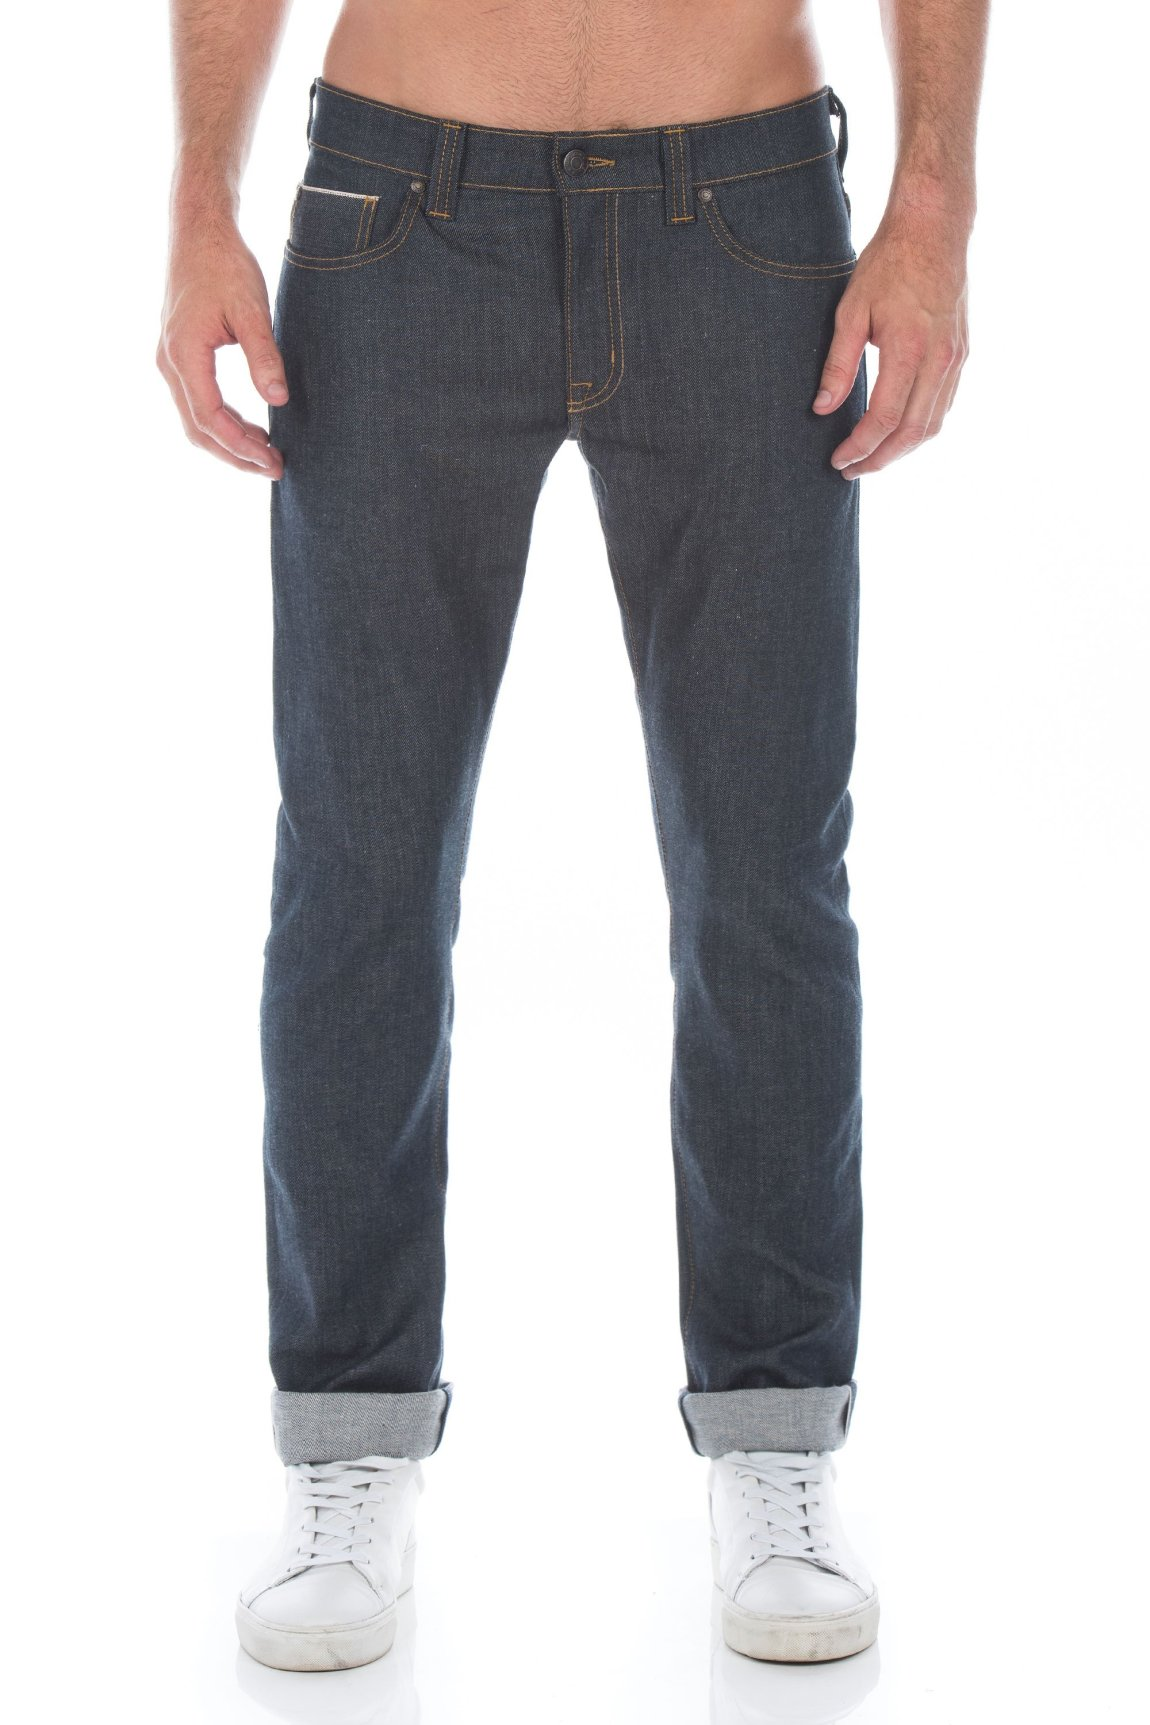 fidelity, jeans, denim, selvedge jeans, stretch jeans, stretch denim